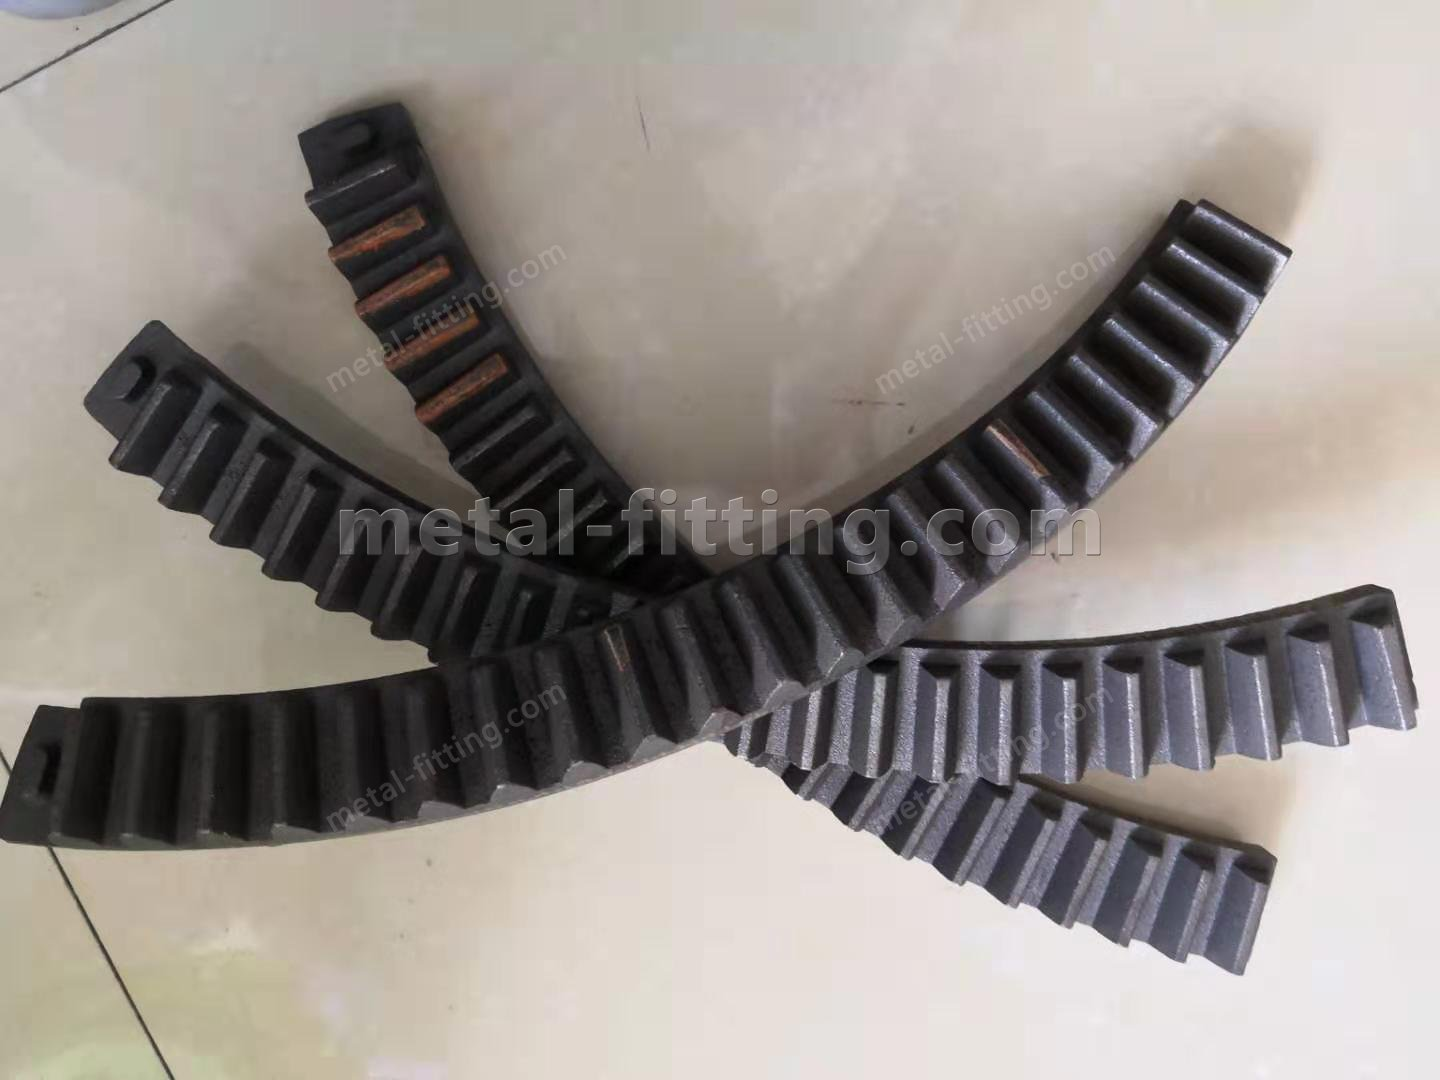 cement mixer cast iron ring gear,metal concrete mixer gear and pinion set ,spinning gear ring-cast mixer ring gear (9)